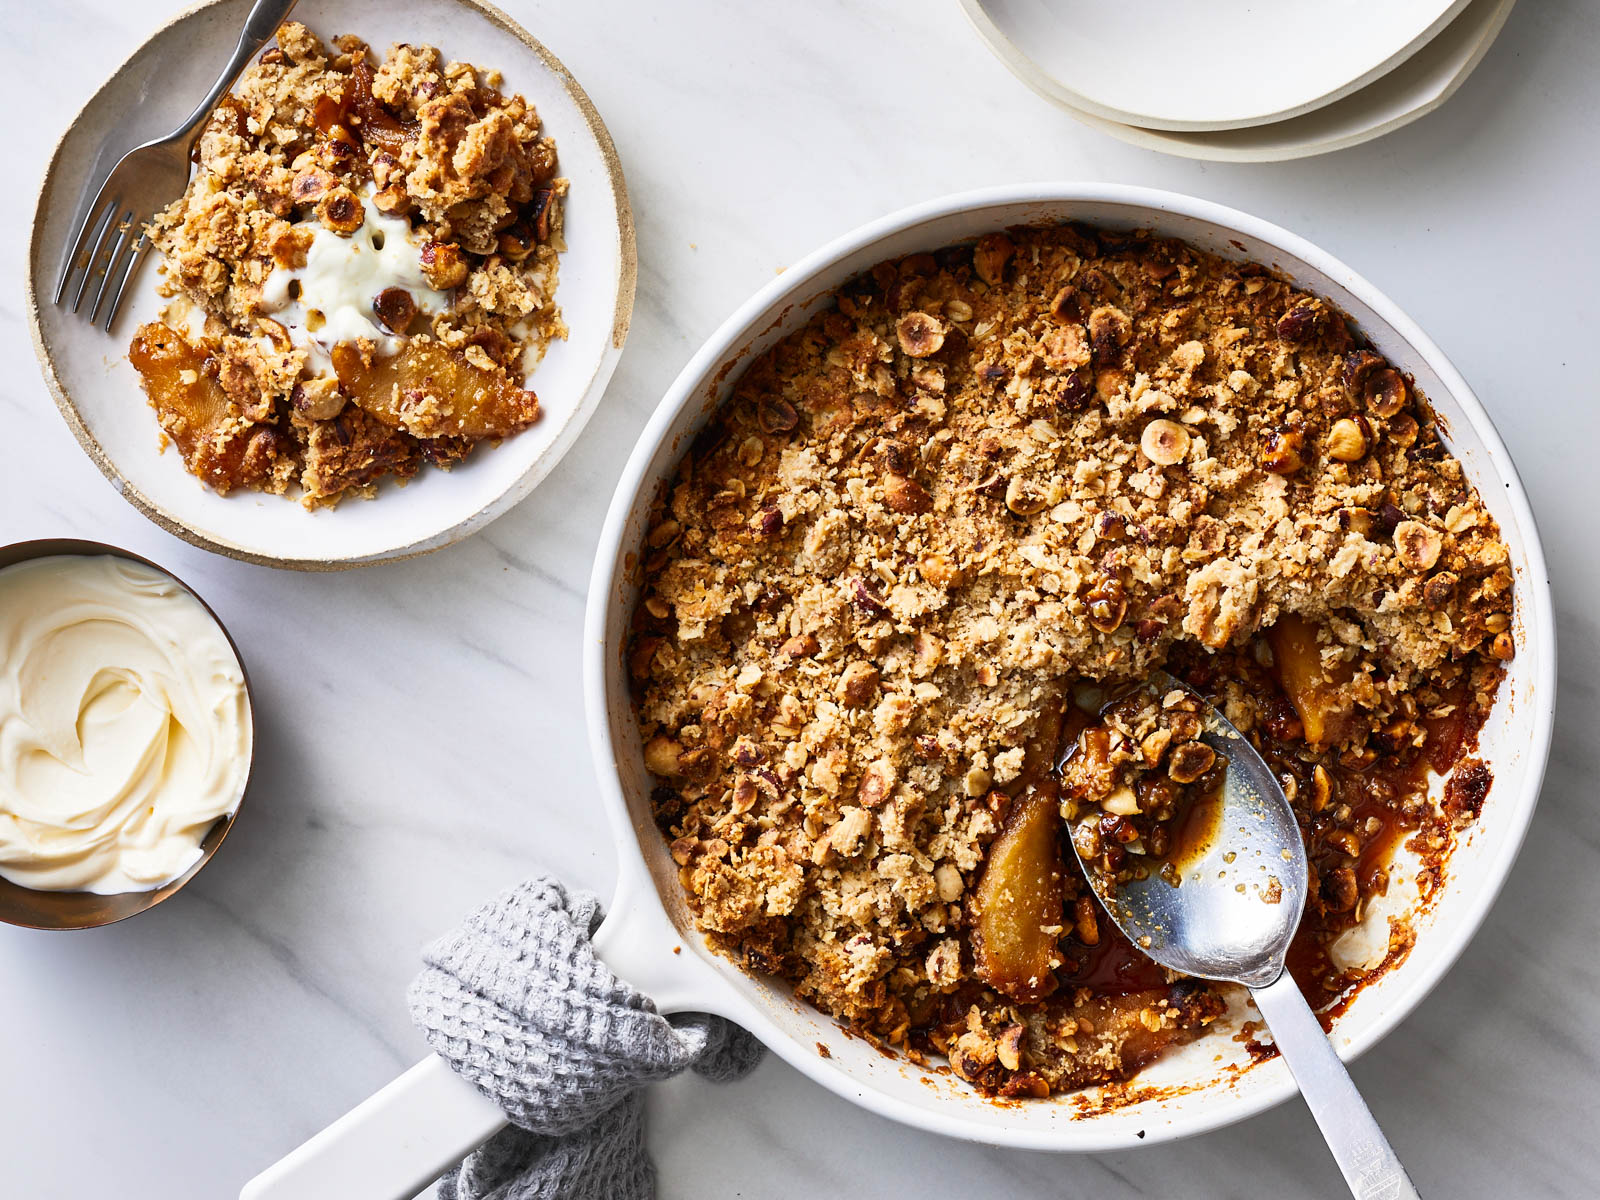 Brandied Apple Crisp with Hazelnuts Recipe